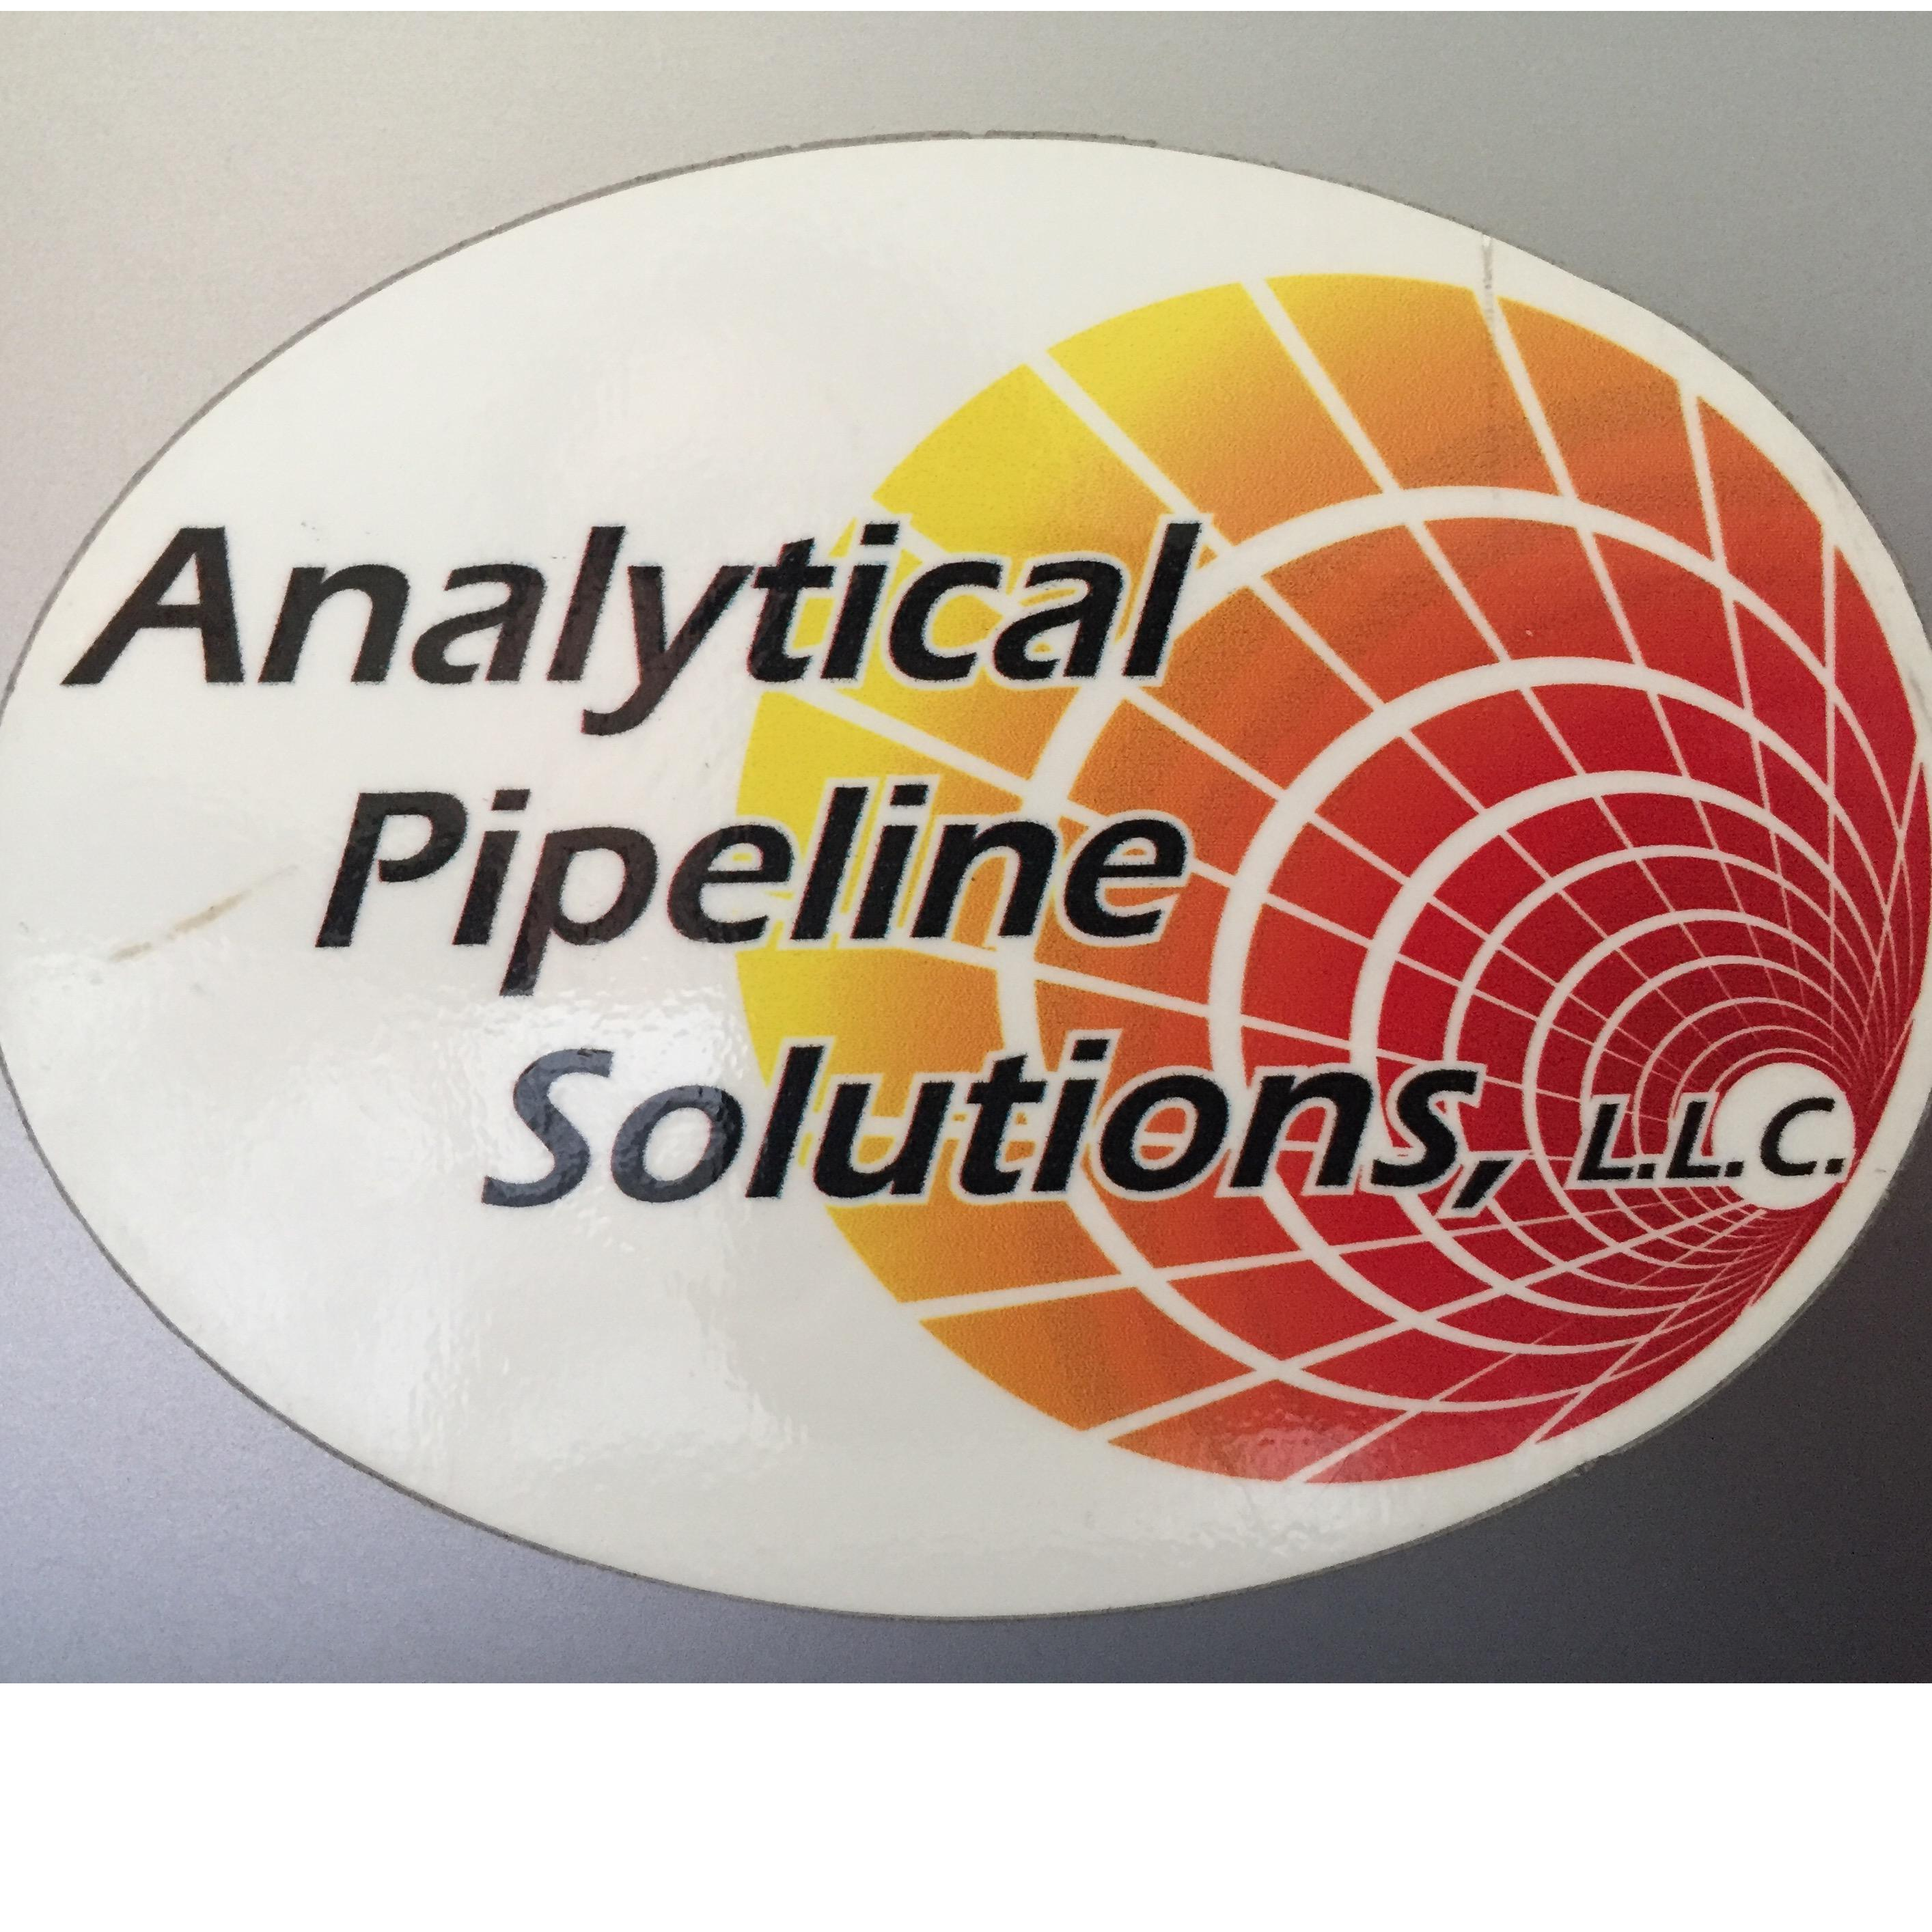 Analytical Pipeline Solutions, LLC - Opelousas, LA 70570 - (337)654-5455 | ShowMeLocal.com